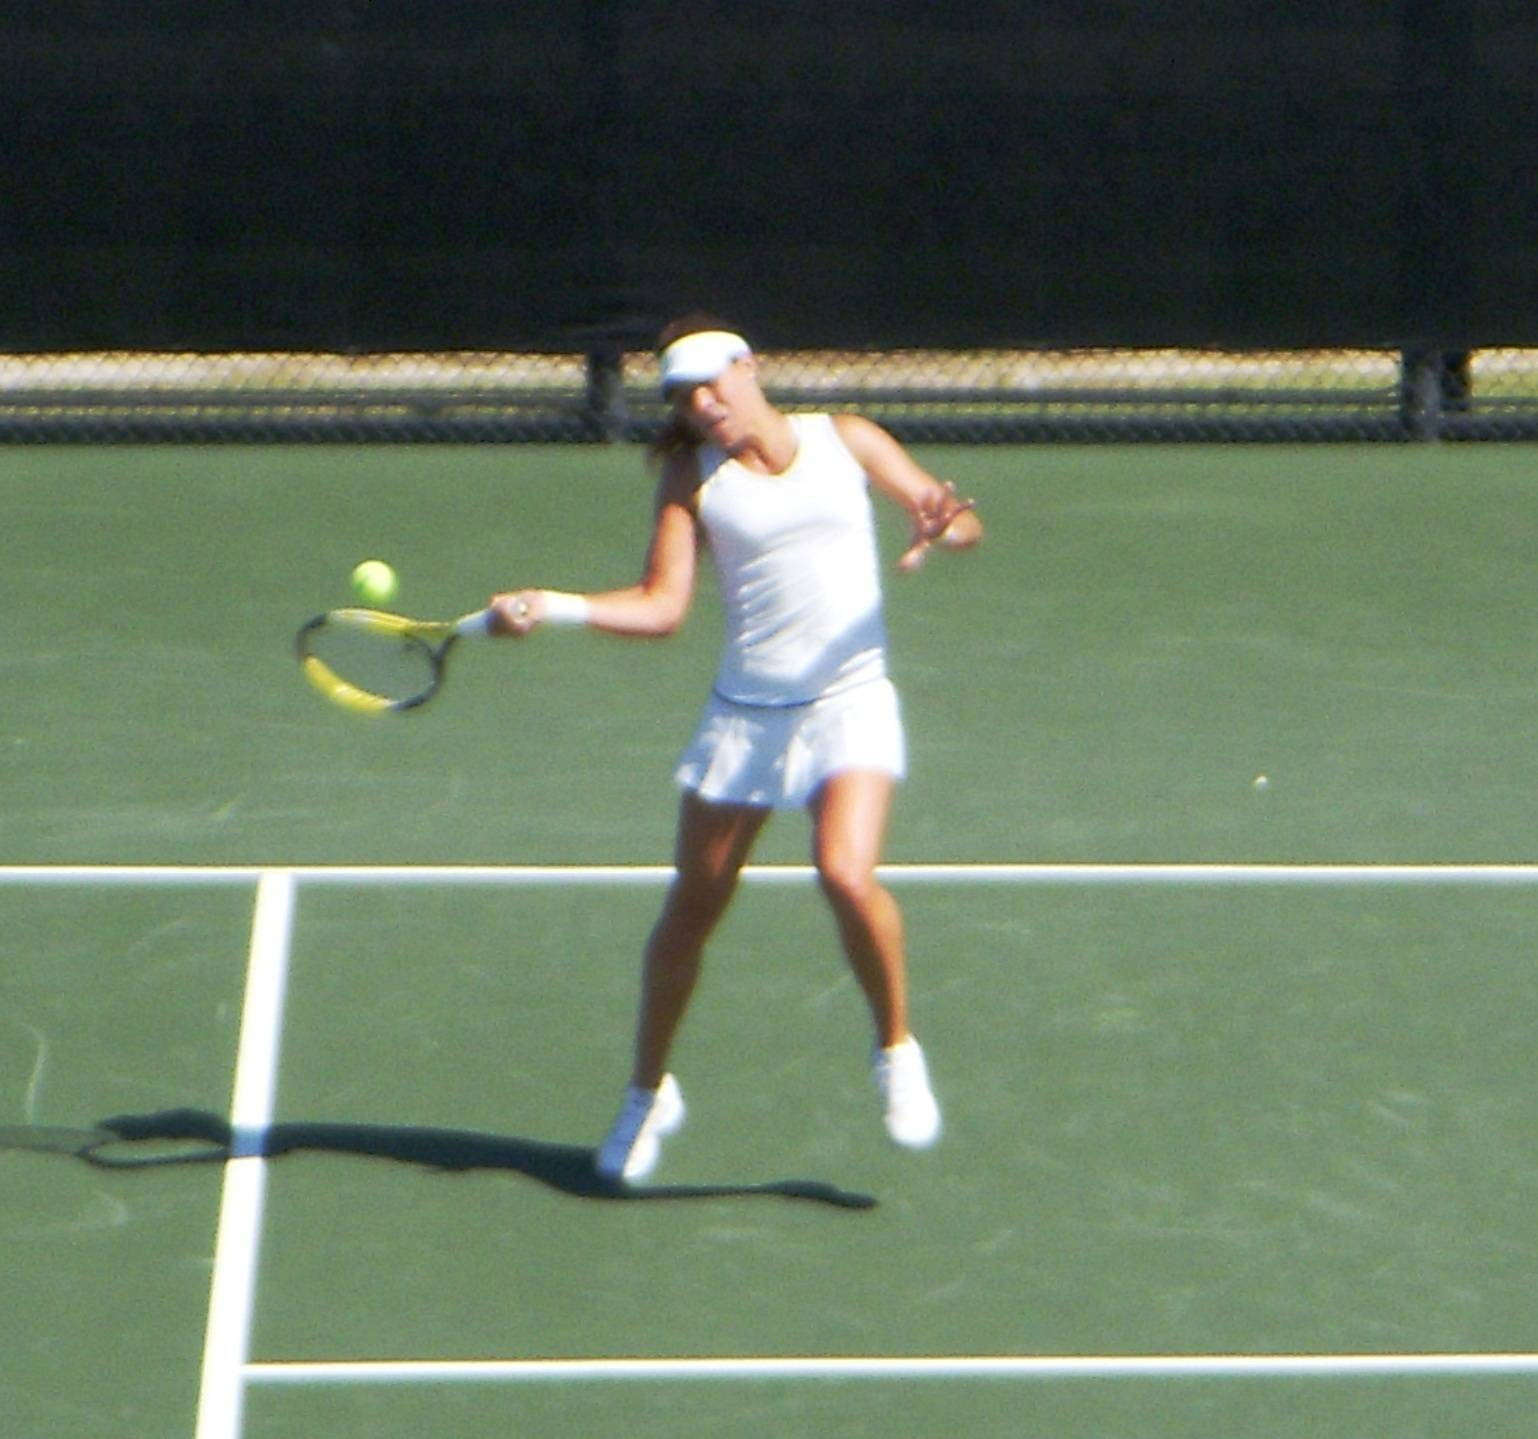 Noemie Scharle clinched the match